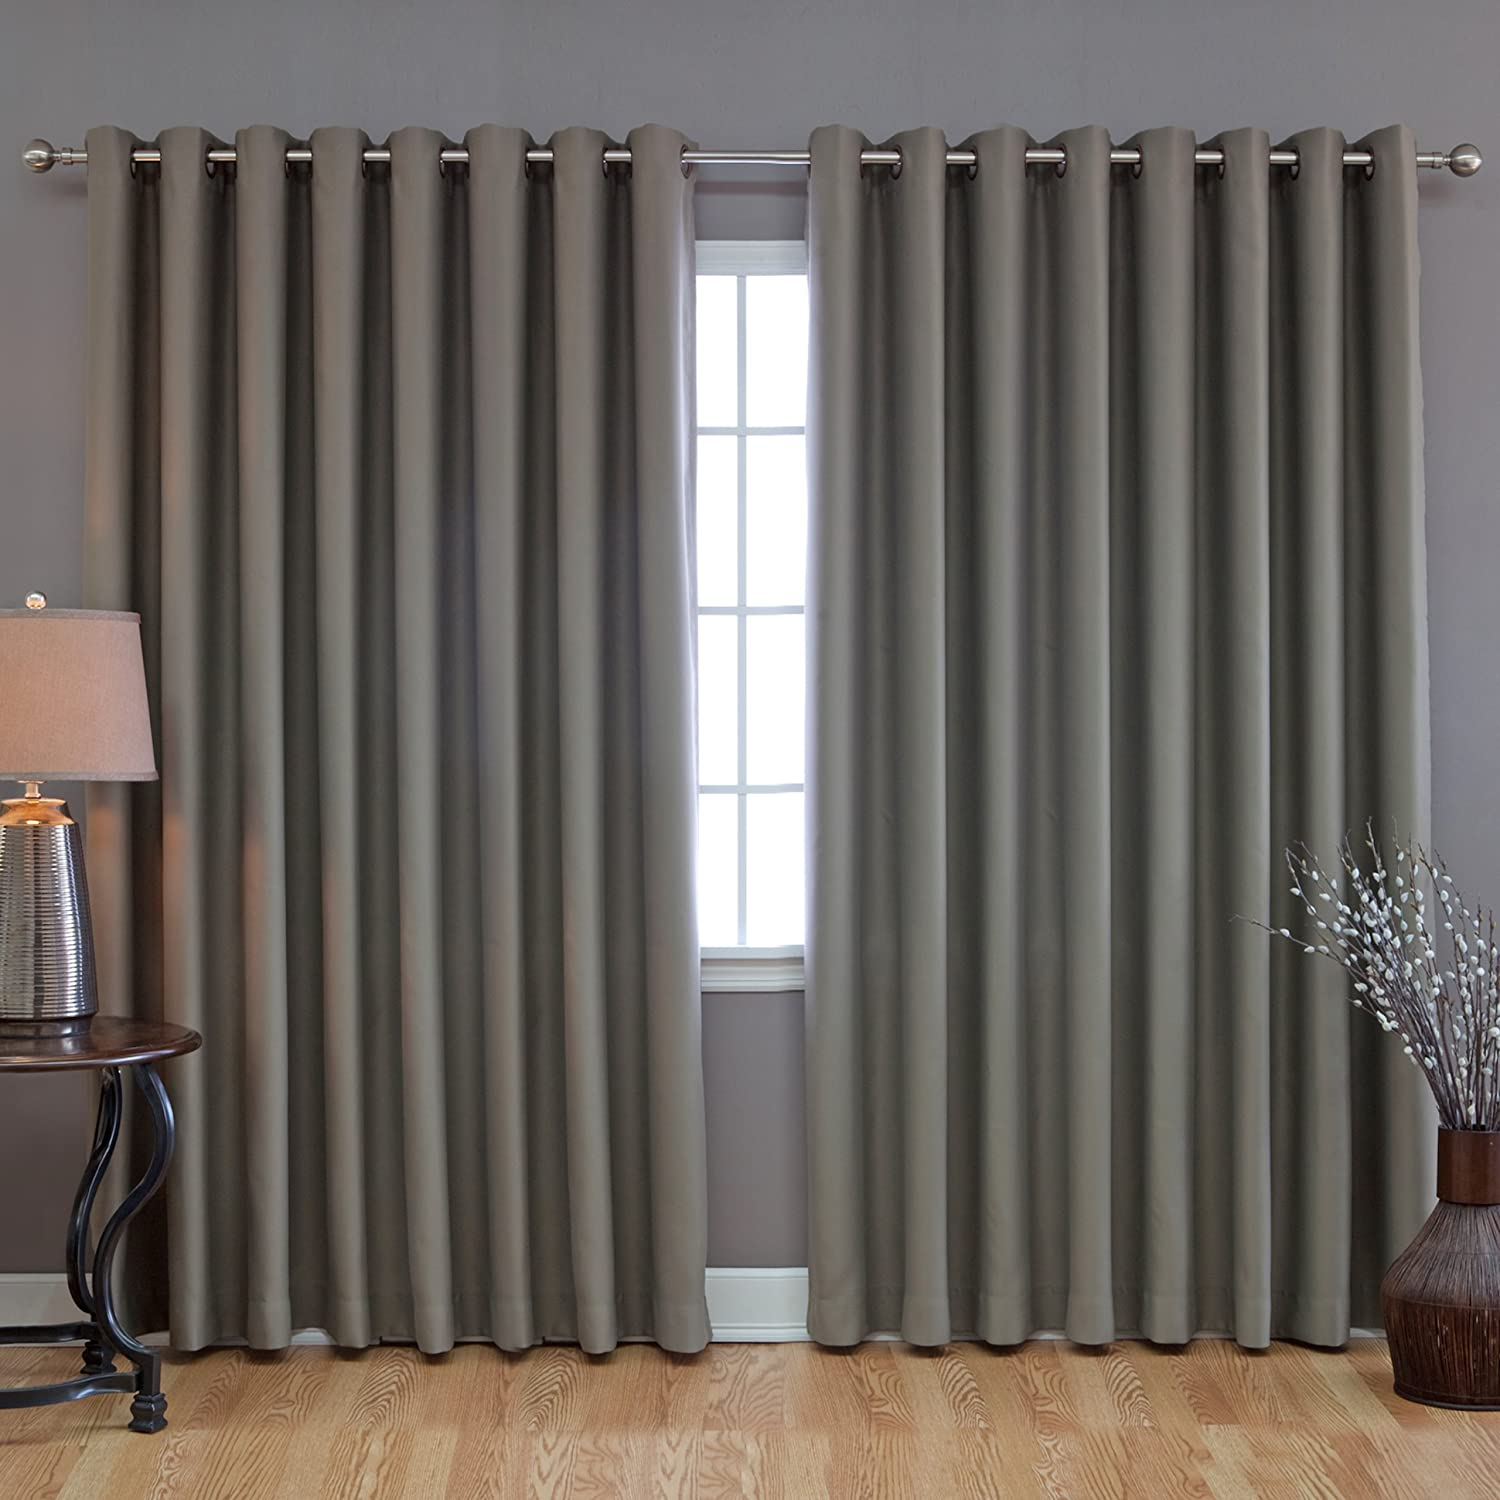 Best Home Fashion Wide Width Thermal Insulated Blackout Curtain   Antique  Bronze Grommet Top   Olive